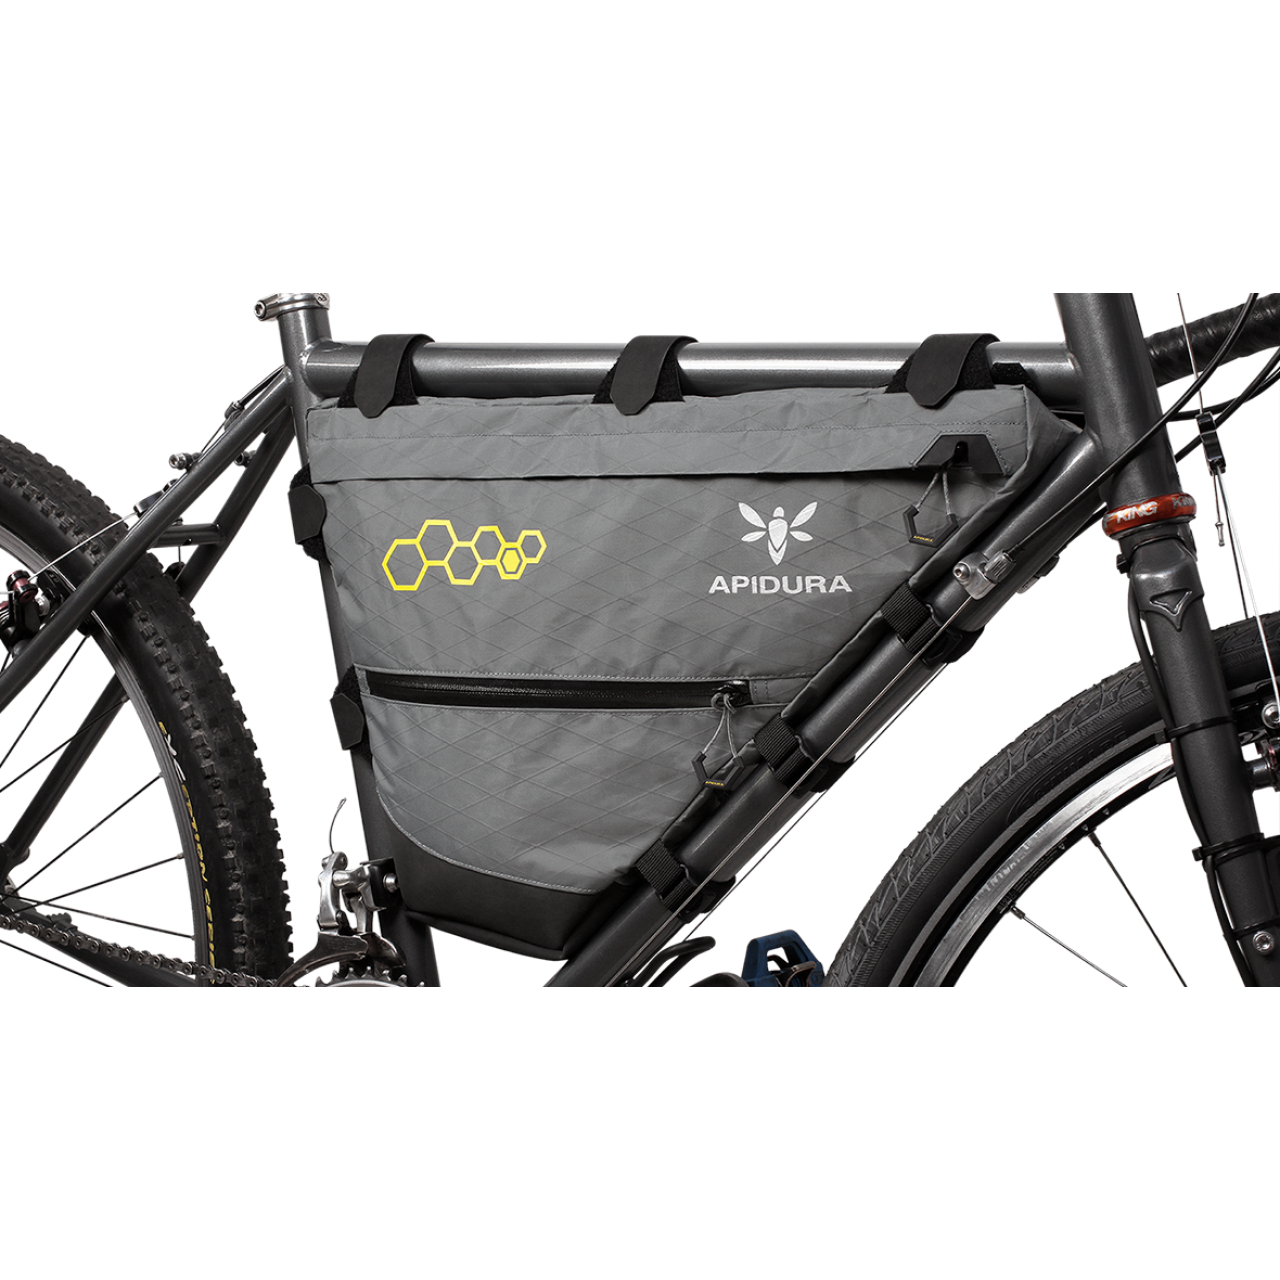 Apidura - Backcountry Full Frame Pack Rahmentasche - 7,5 L, 146,90 €